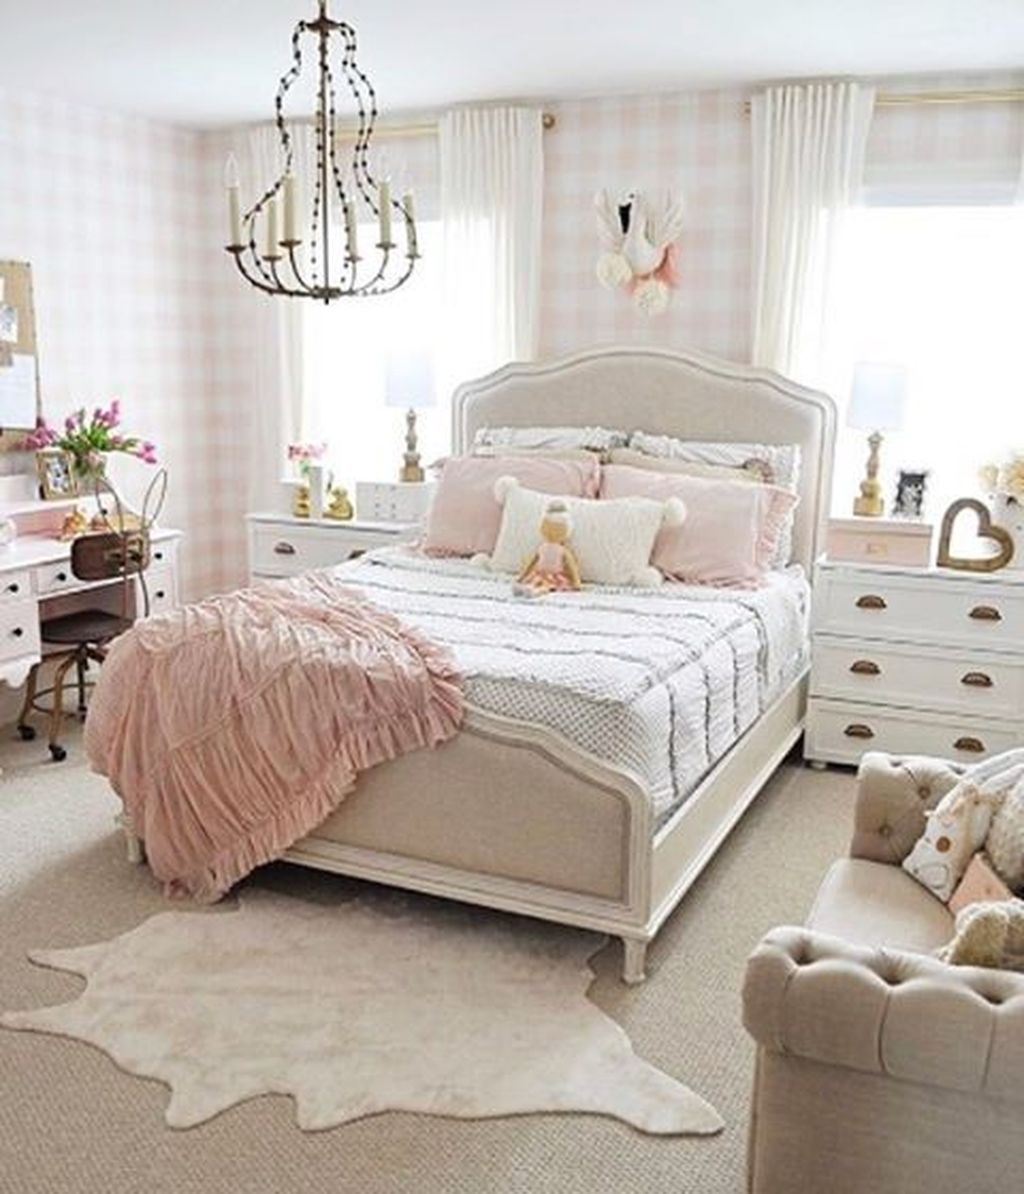 34 Stunning Stylish French Country Bedroom Design Ideas Home Bestiest Country Bedroom Decor French Country Bedrooms French Country Decorating Bedroom